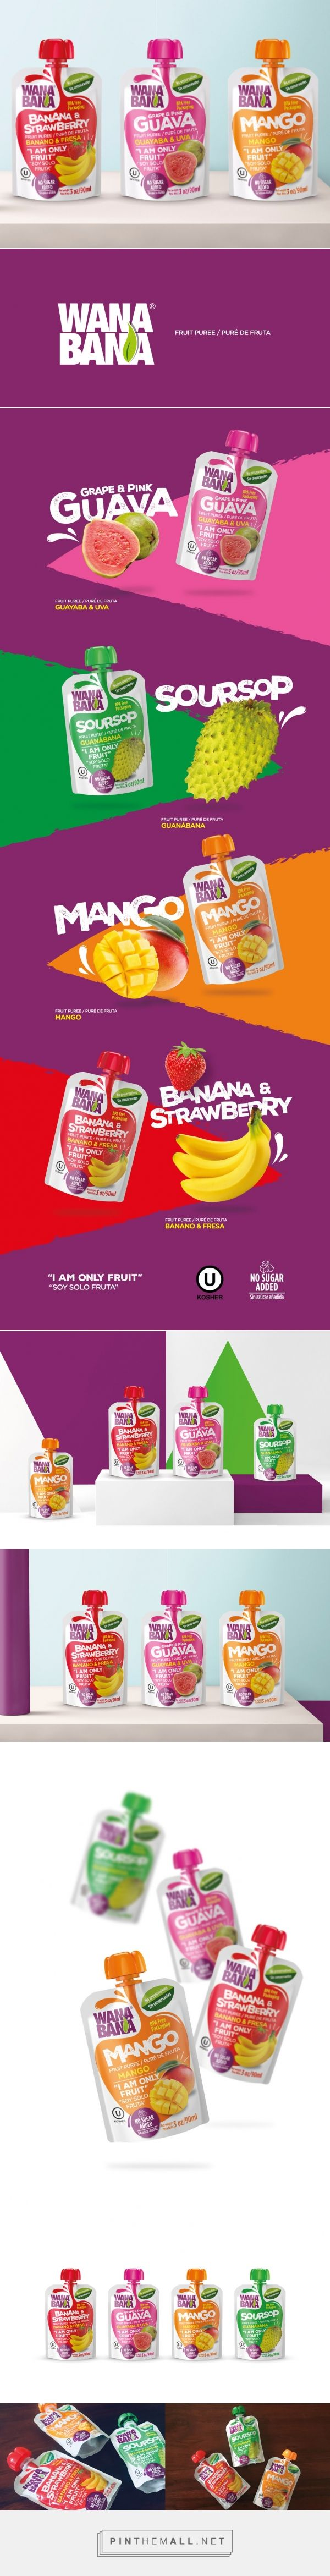 Wanabana Fruit Puree packaging design by Gworkshop | Packaging Design Studio - http://www.packagingoftheworld.com/2017/11/wanabana-fruit-puree.html